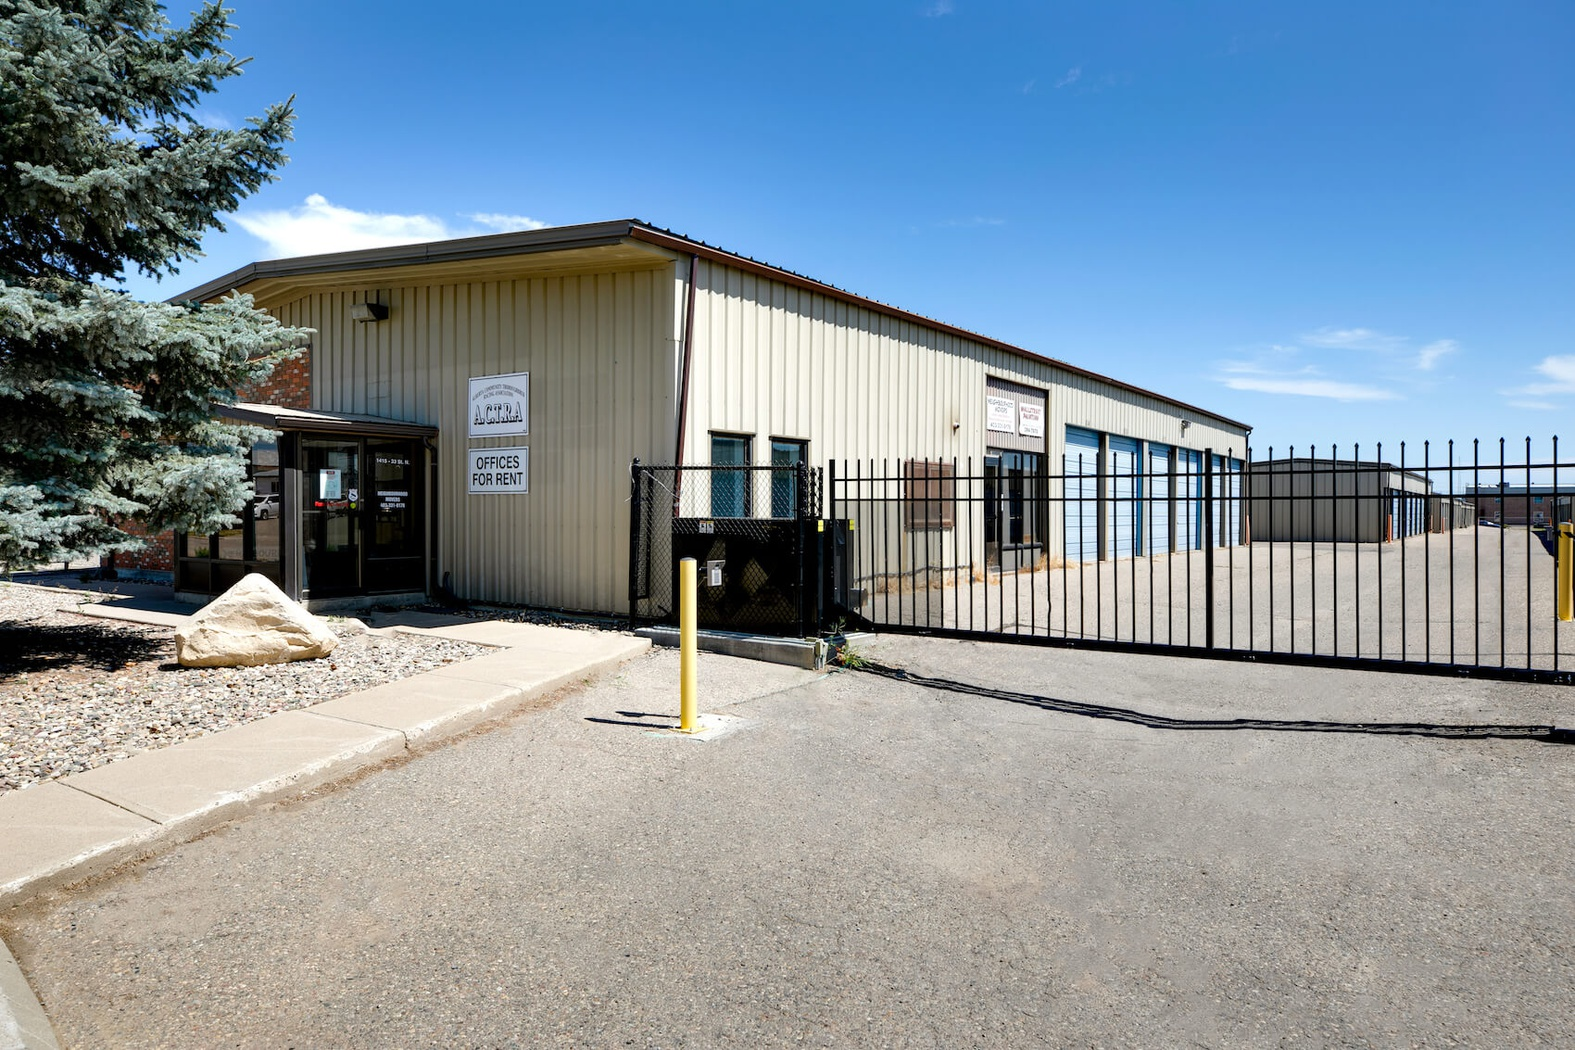 Rent Lethbridge storage units at 1415 33 St N. We offer a wide-range of affordable self storage units and your first 4 weeks are free!